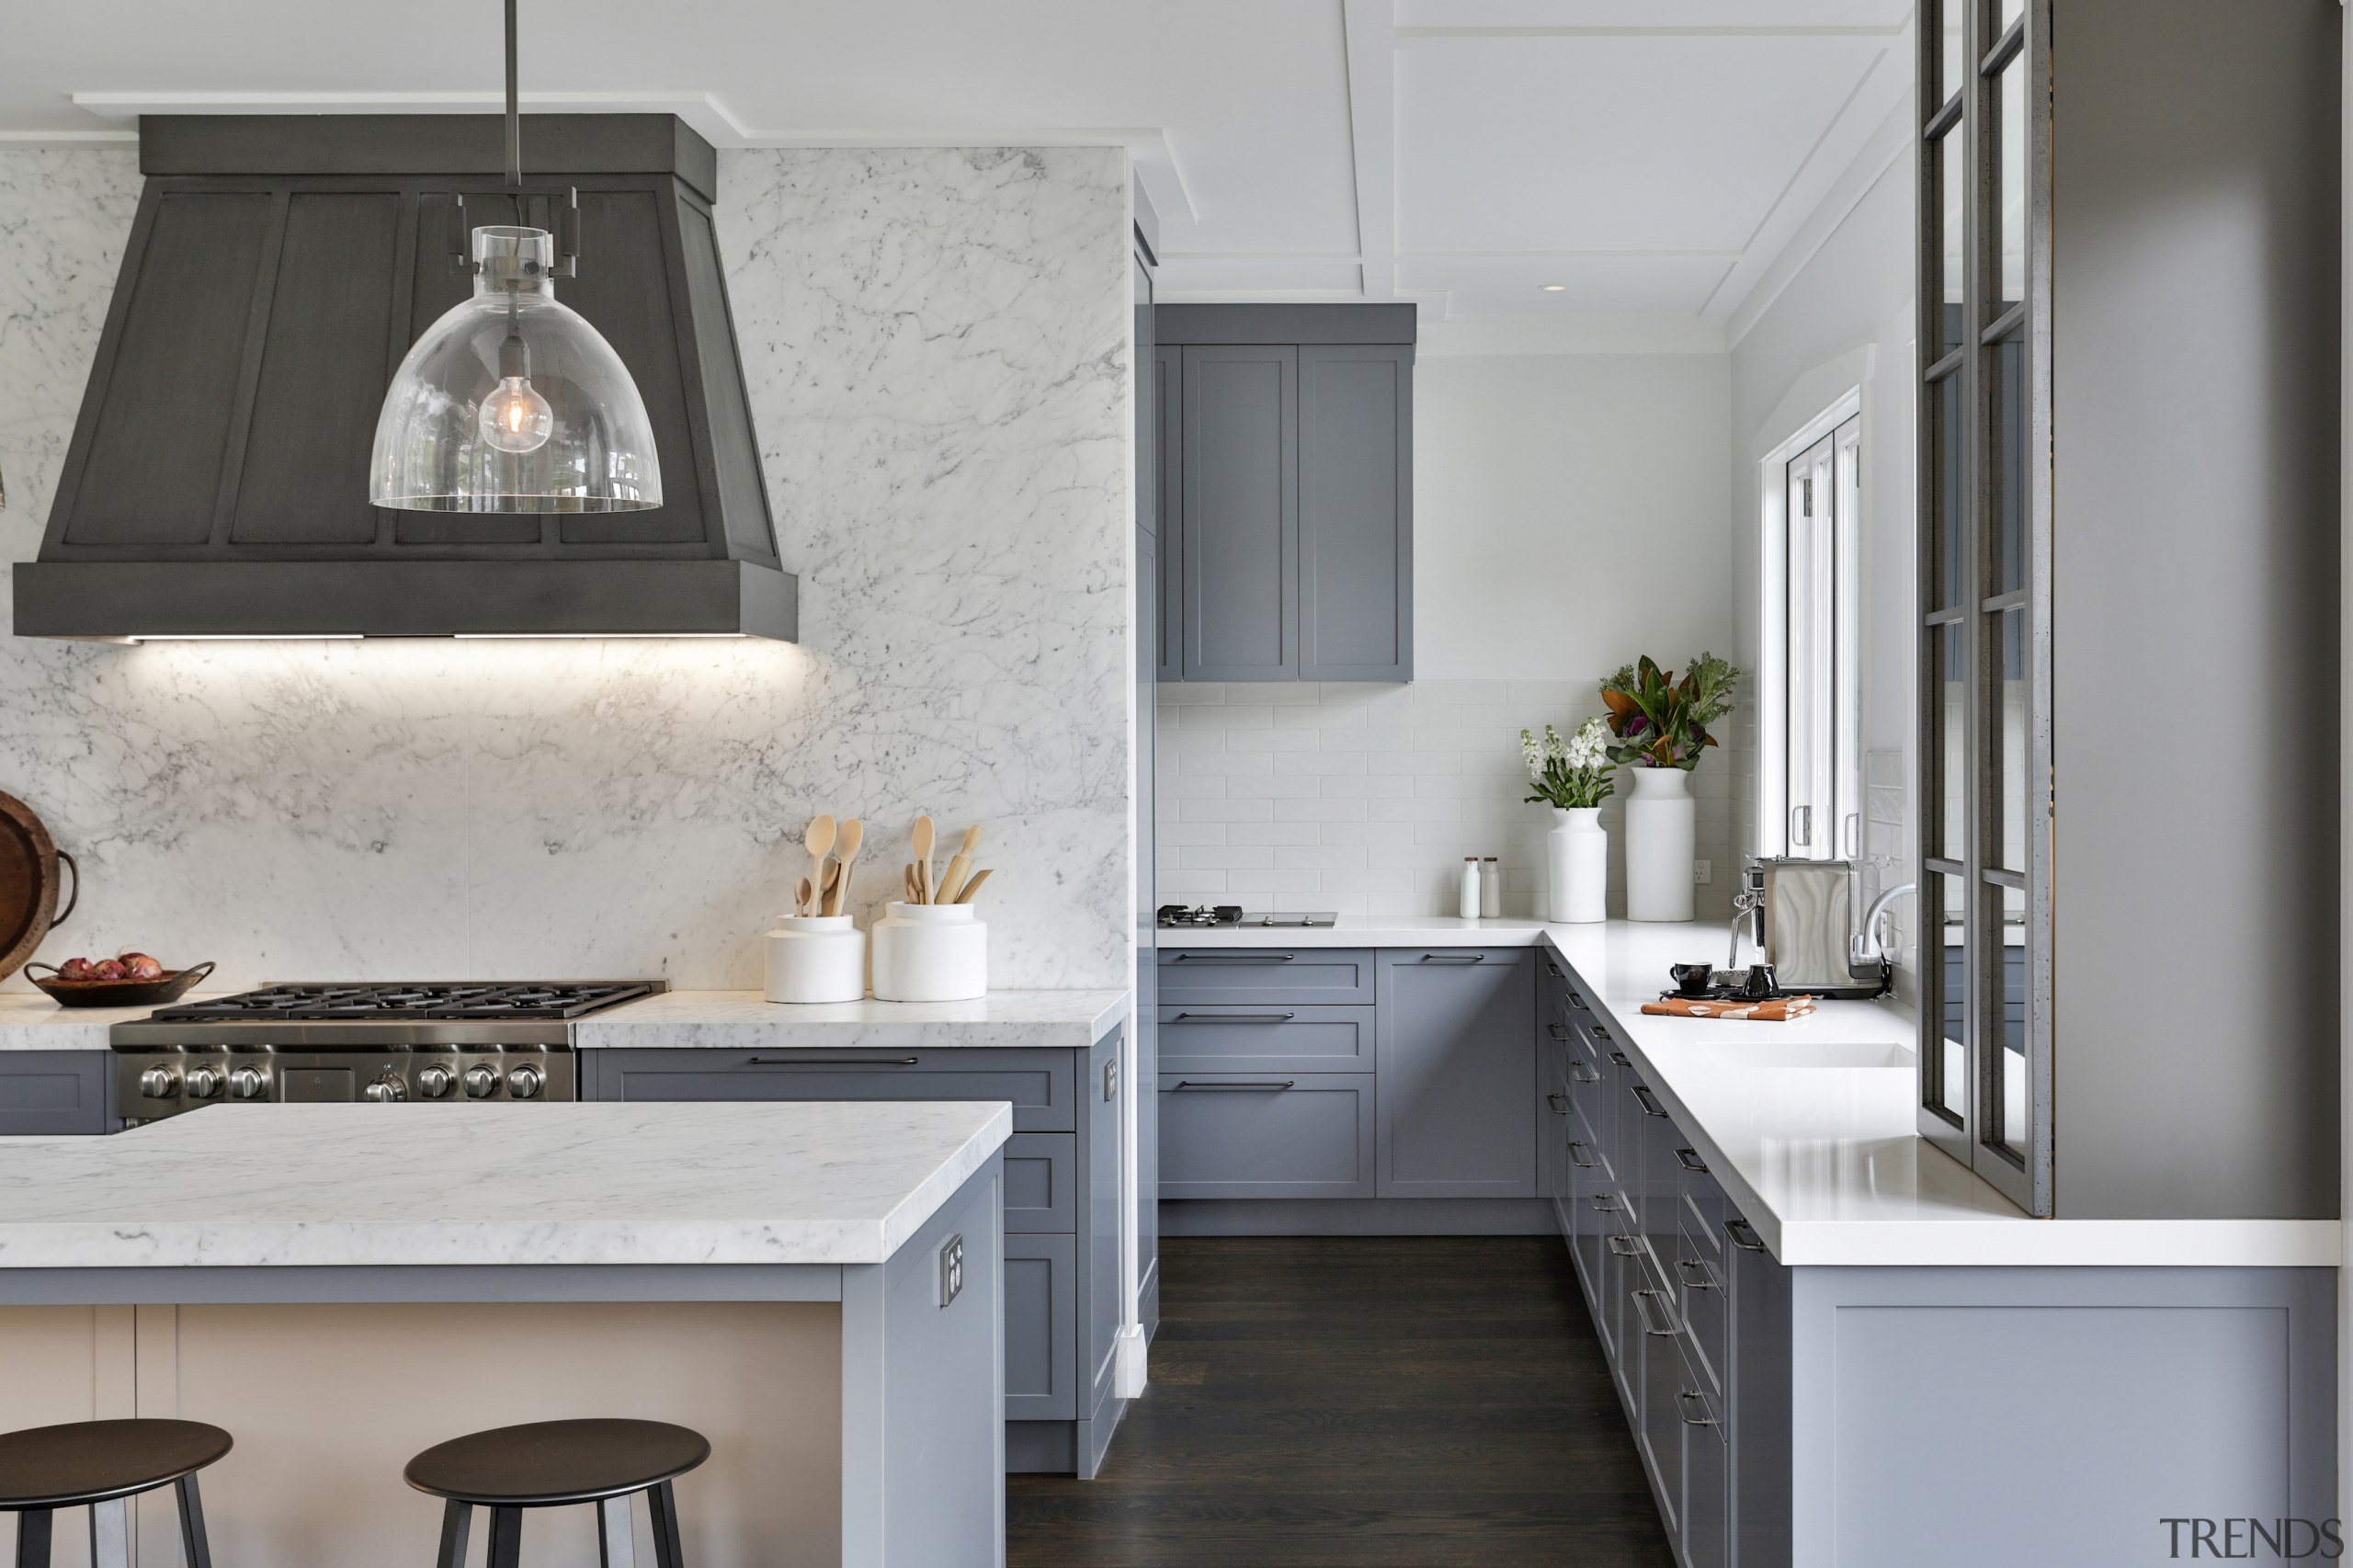 This traditional kitchen has two separate, but connected